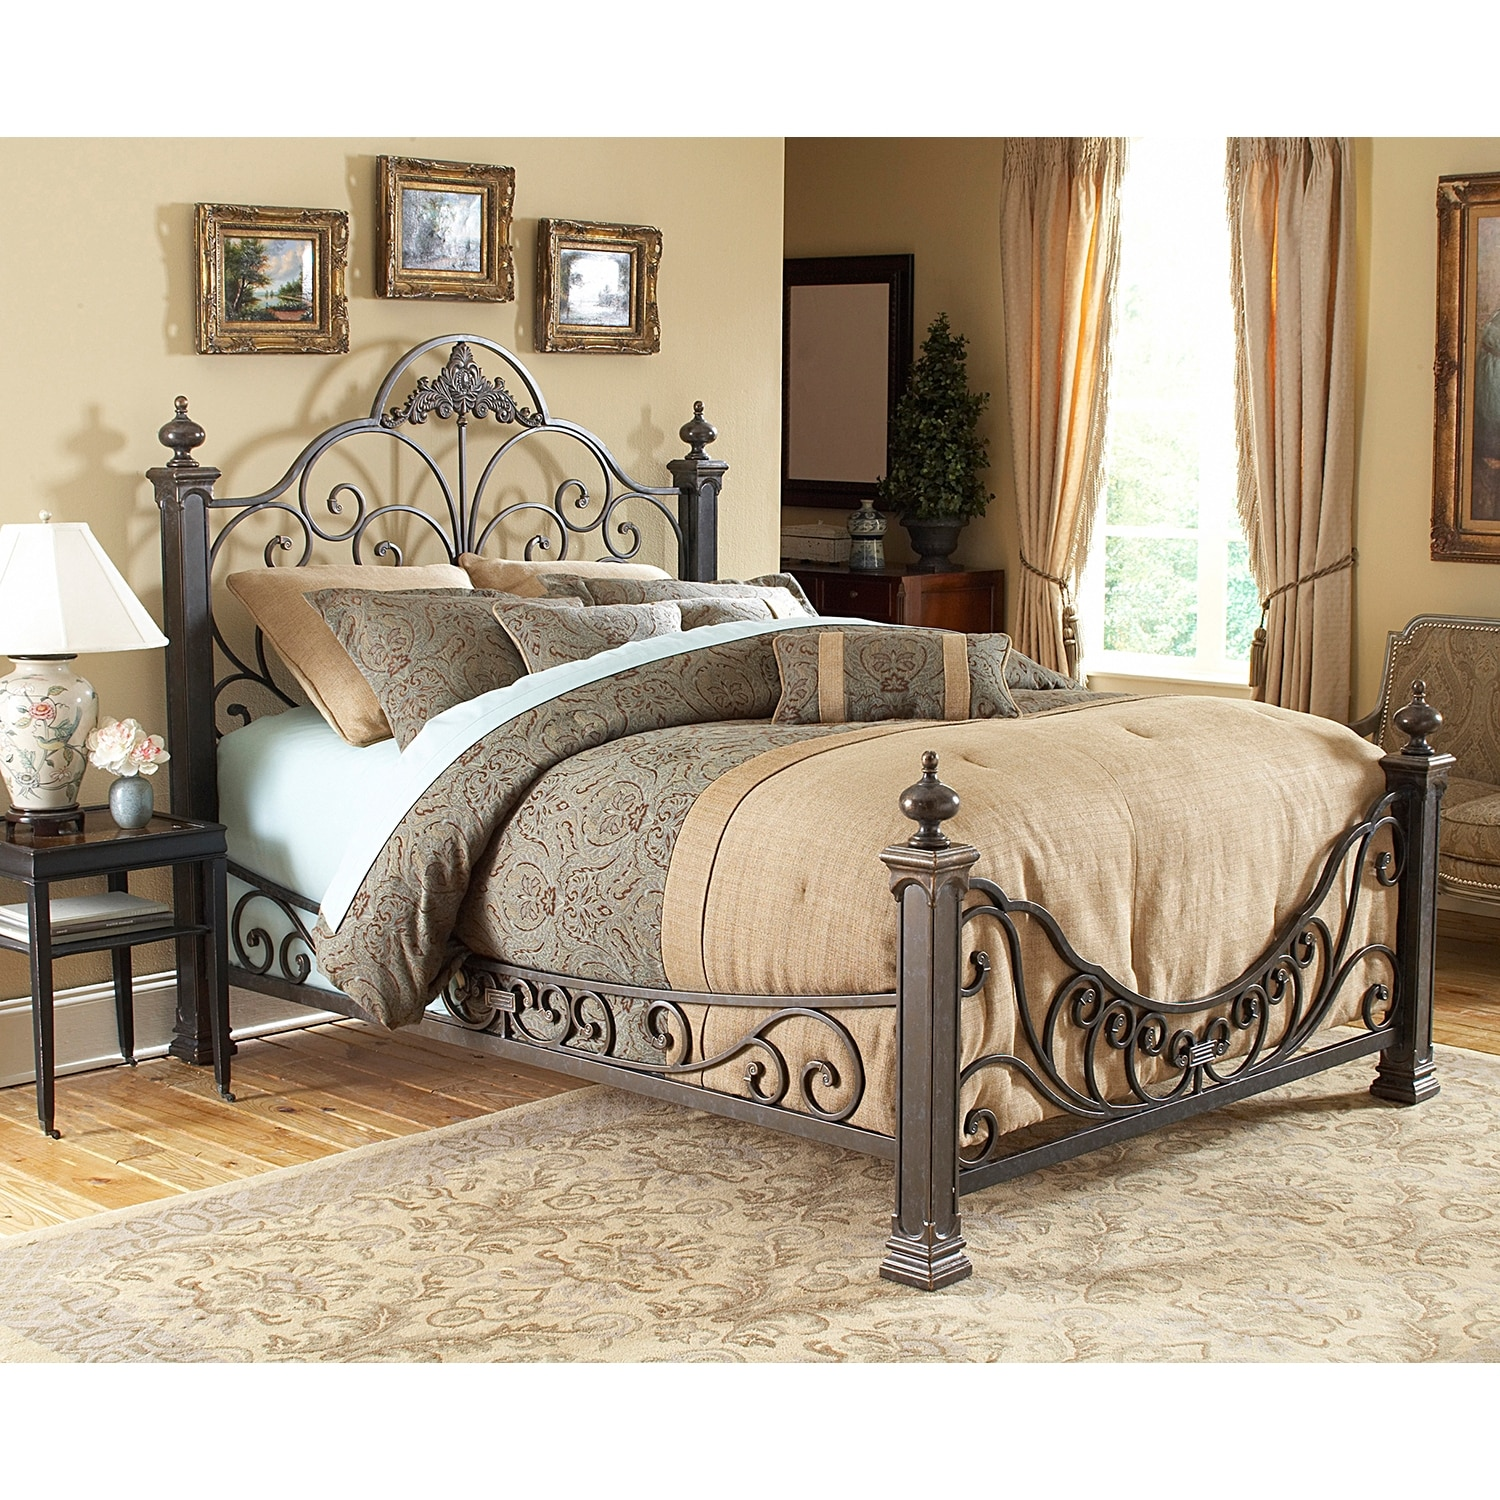 Bedroom Furniture - Talon Queen Bed - Gilded Slate